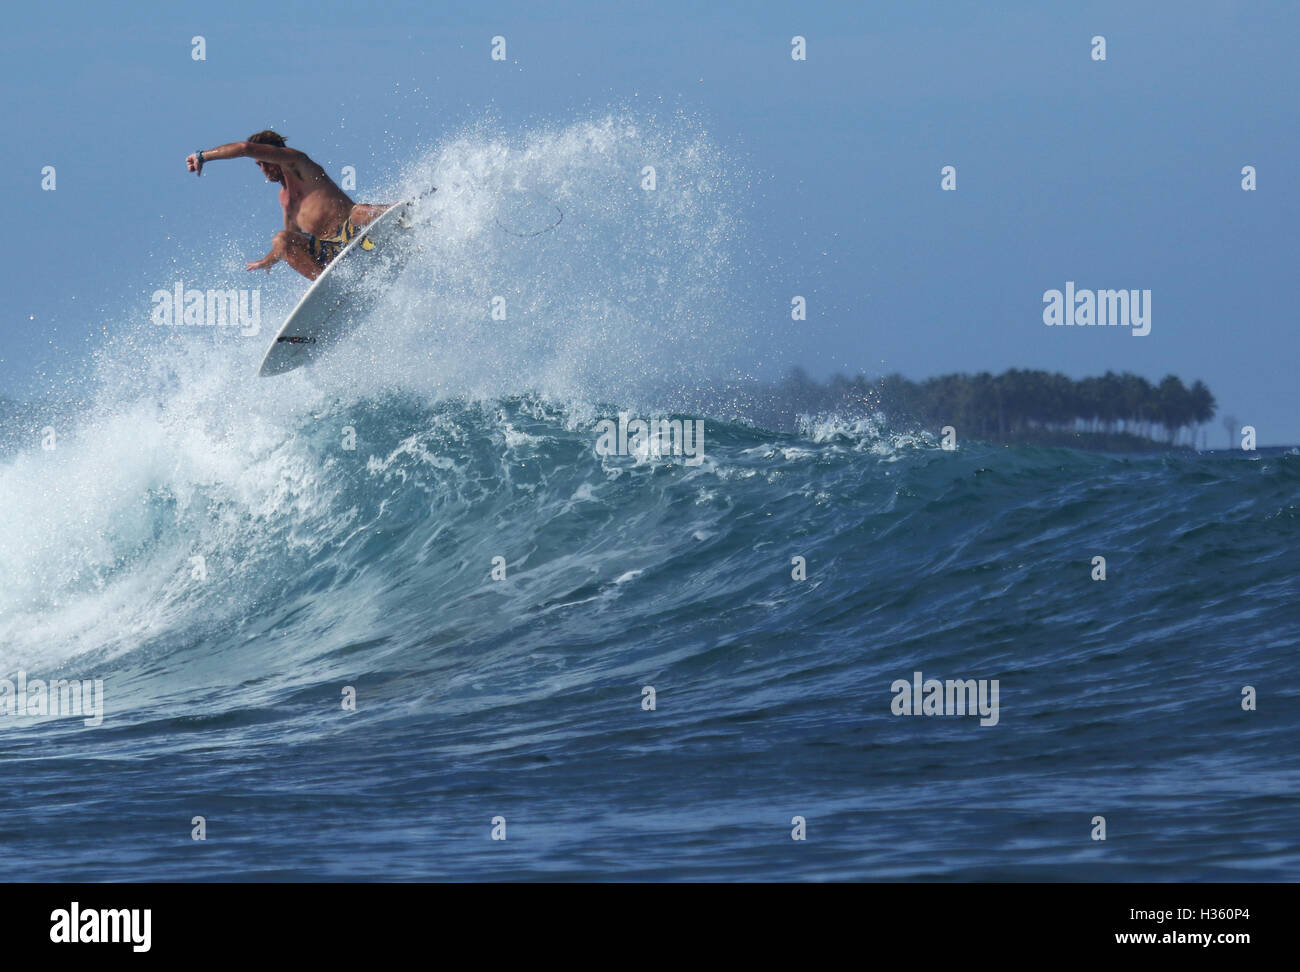 Surfer flying over a wave at Macaronis, Mentawai Islands - Stock Image